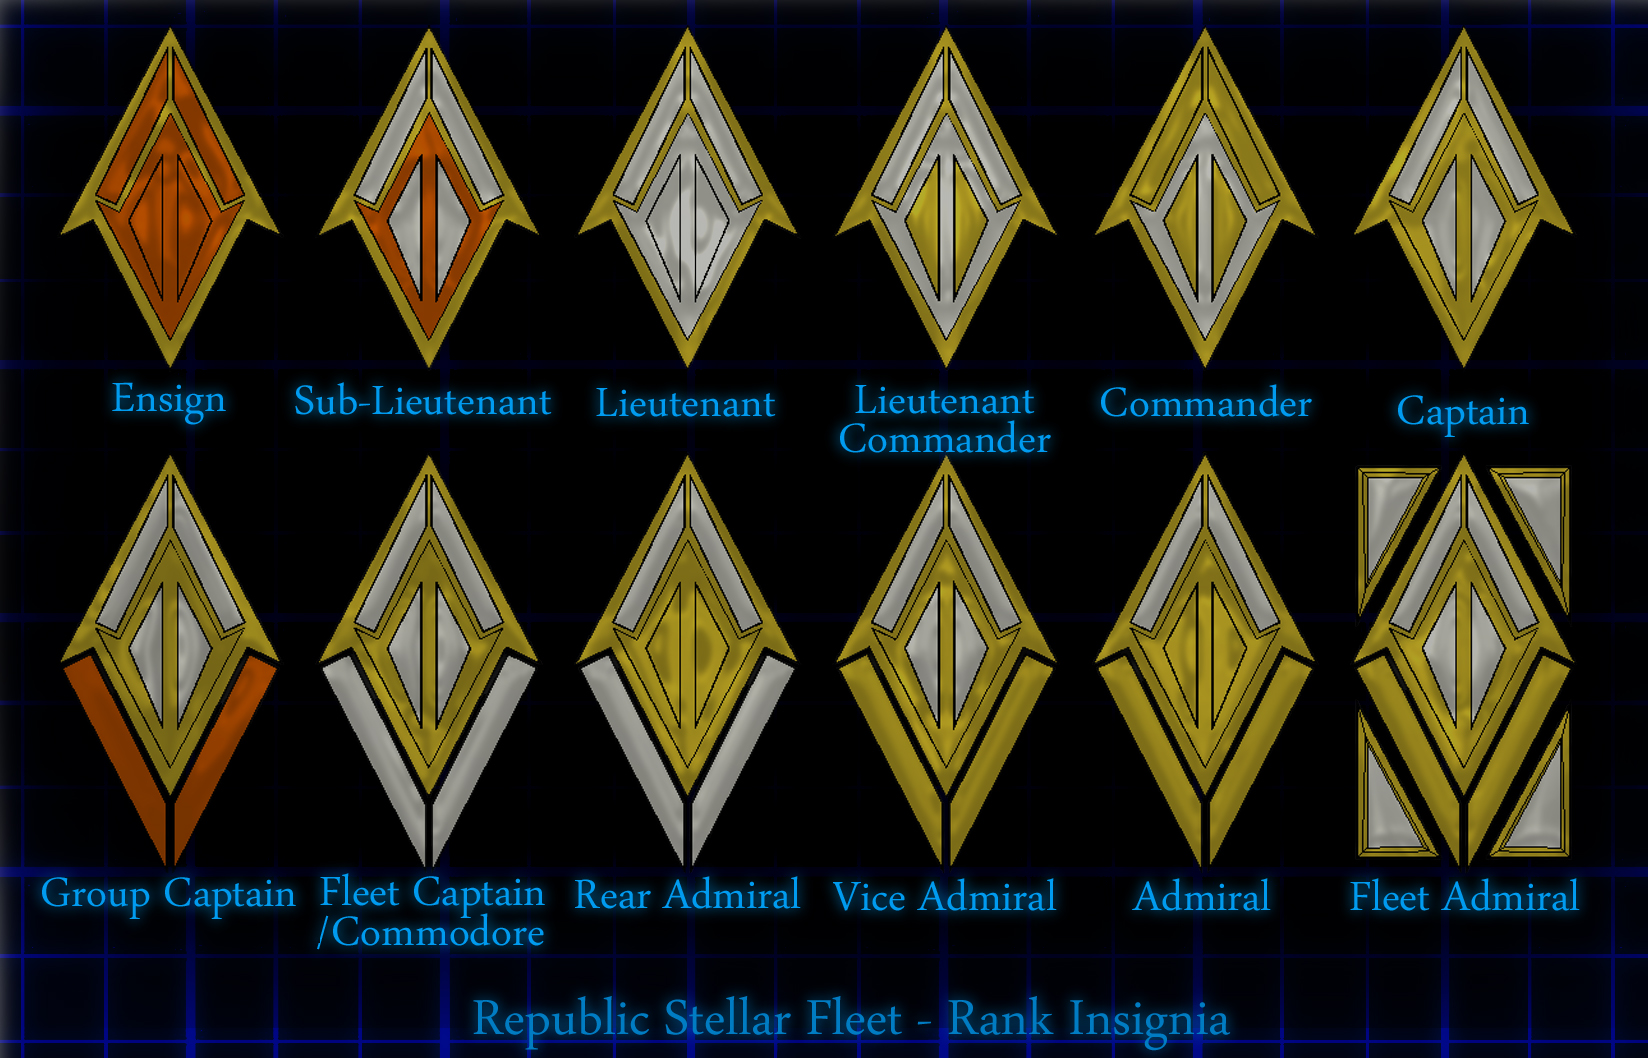 2d human republic rank insignia larger image these are the rank insignia buycottarizona Image collections